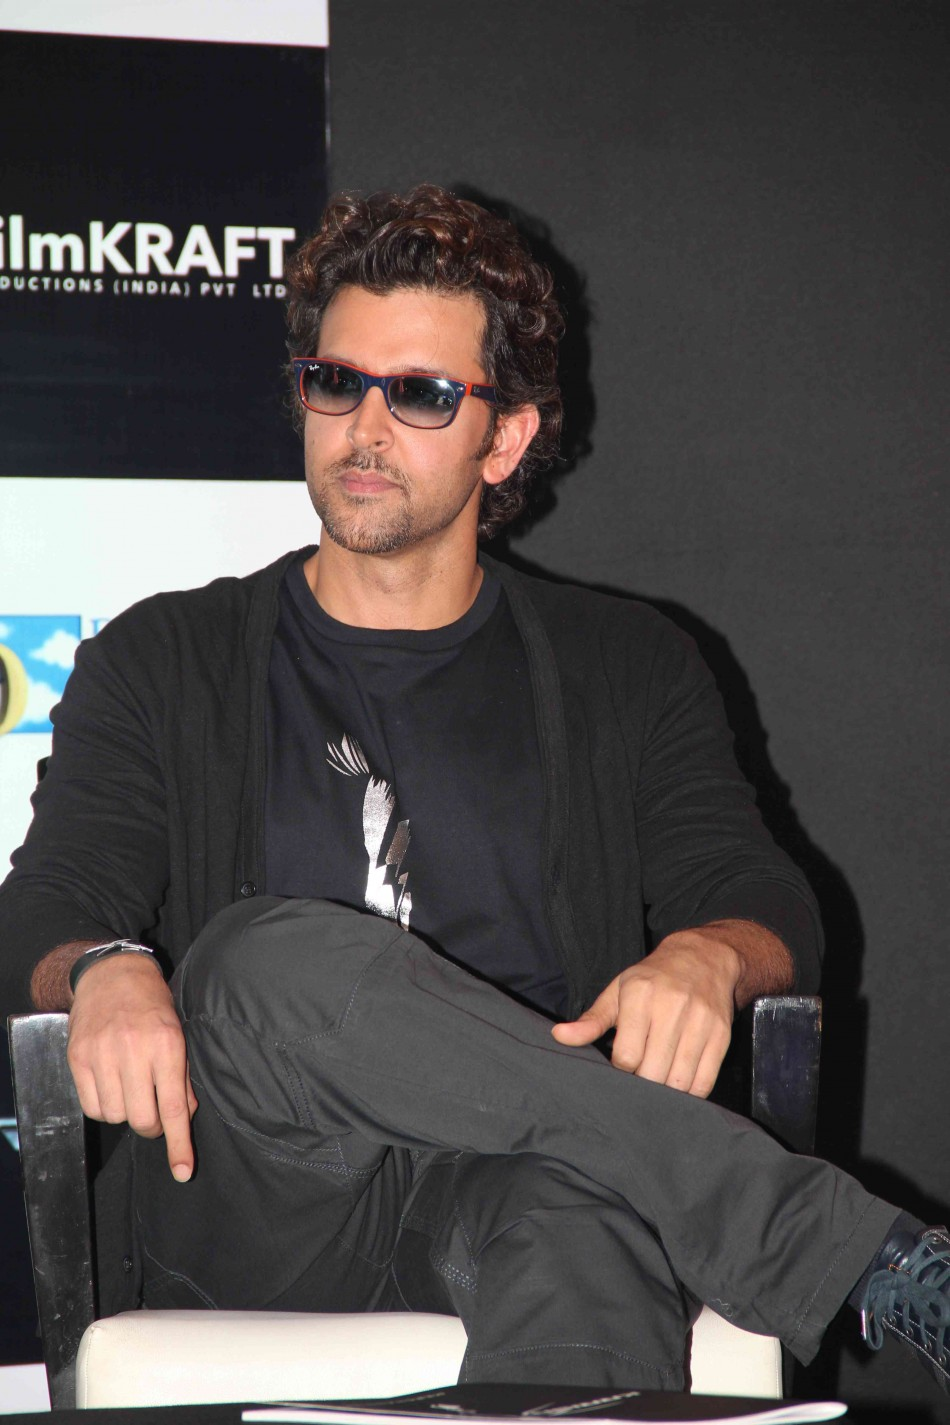 13oct Krrish3Merchandise06 Hrithik Roshan unveils Krrish 3 merchandize